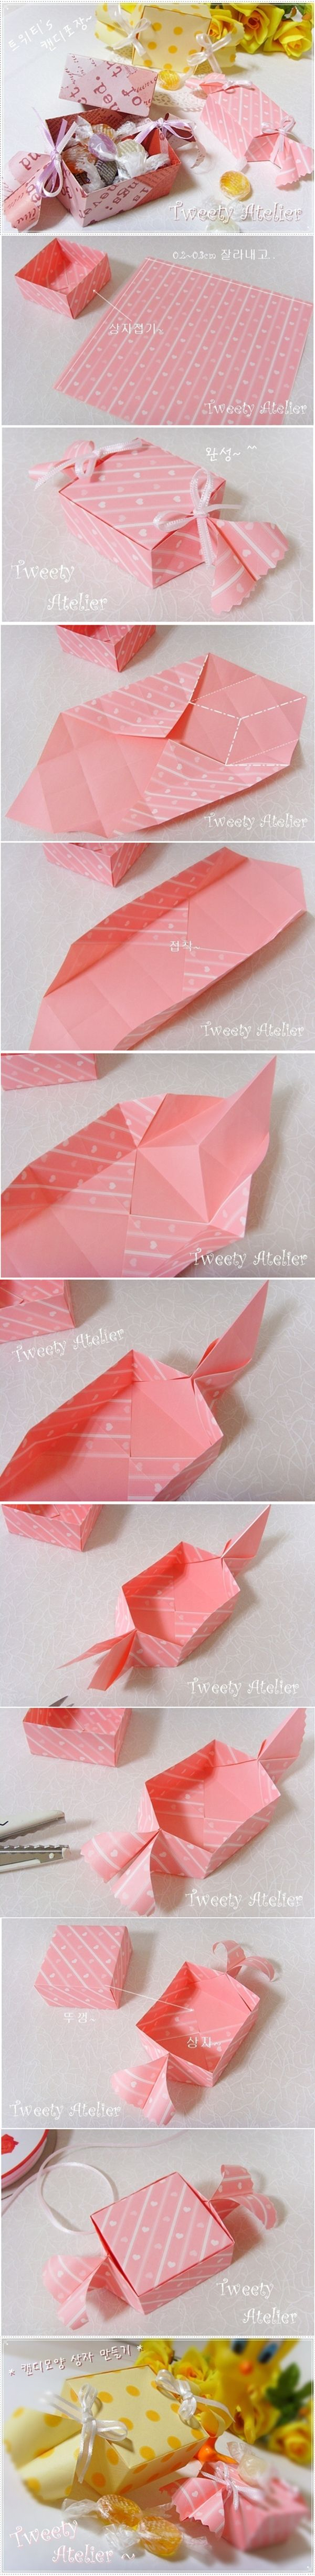 This is awesome idea to send candies as gift, in a box of candy shape, your guests will be amazed at this hand-crafted original cute ones – -It's folded wi